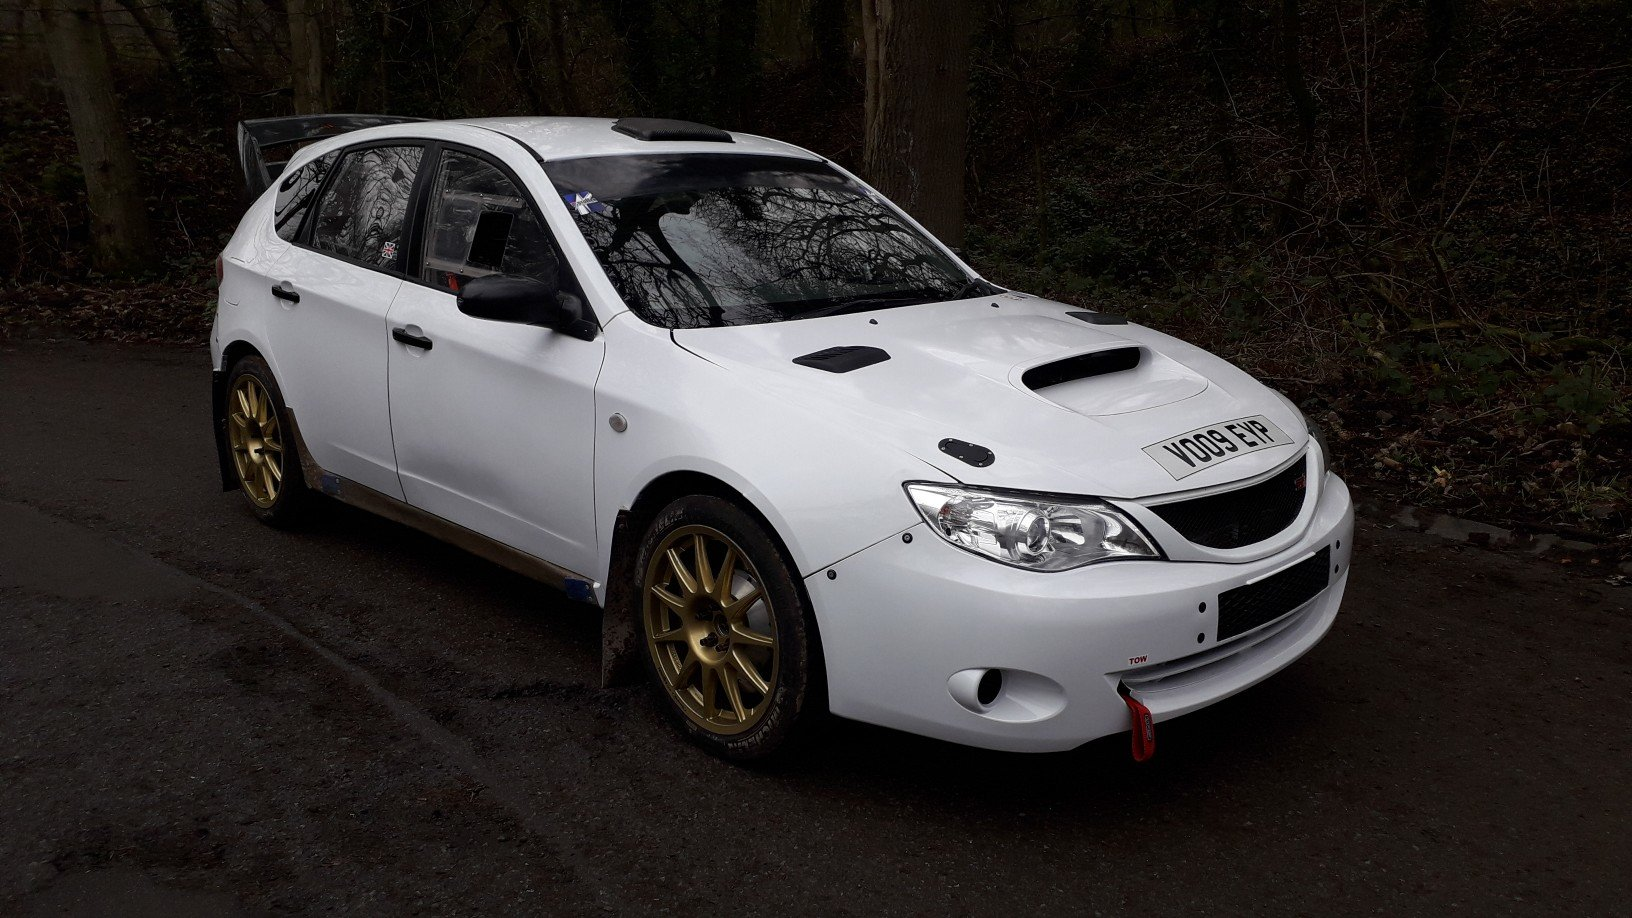 2009 subaru impreza n14 rally car full msa legal ready to rally  SOLD (picture 3 of 6)